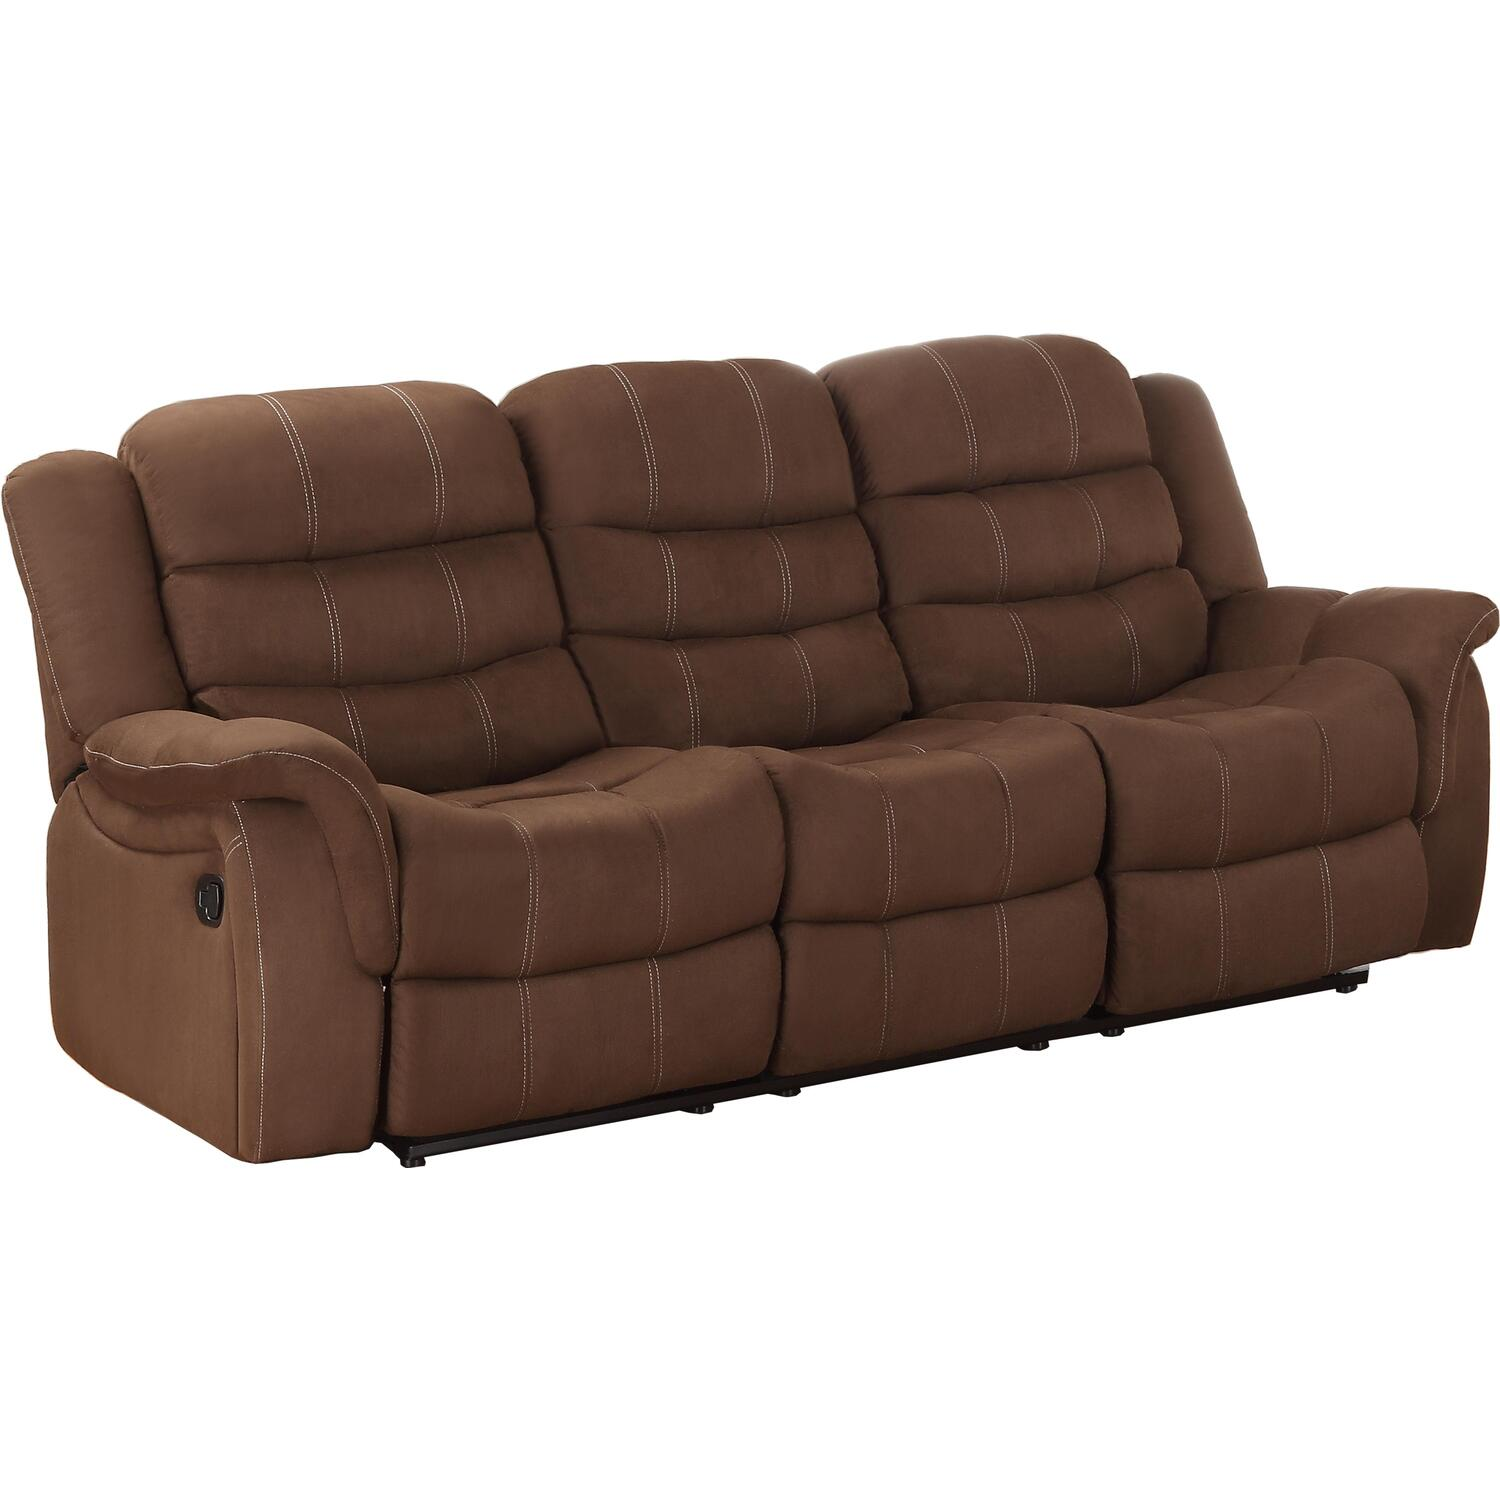 Homelegance Huxley Double Reclining Sofa By OJ Commerce